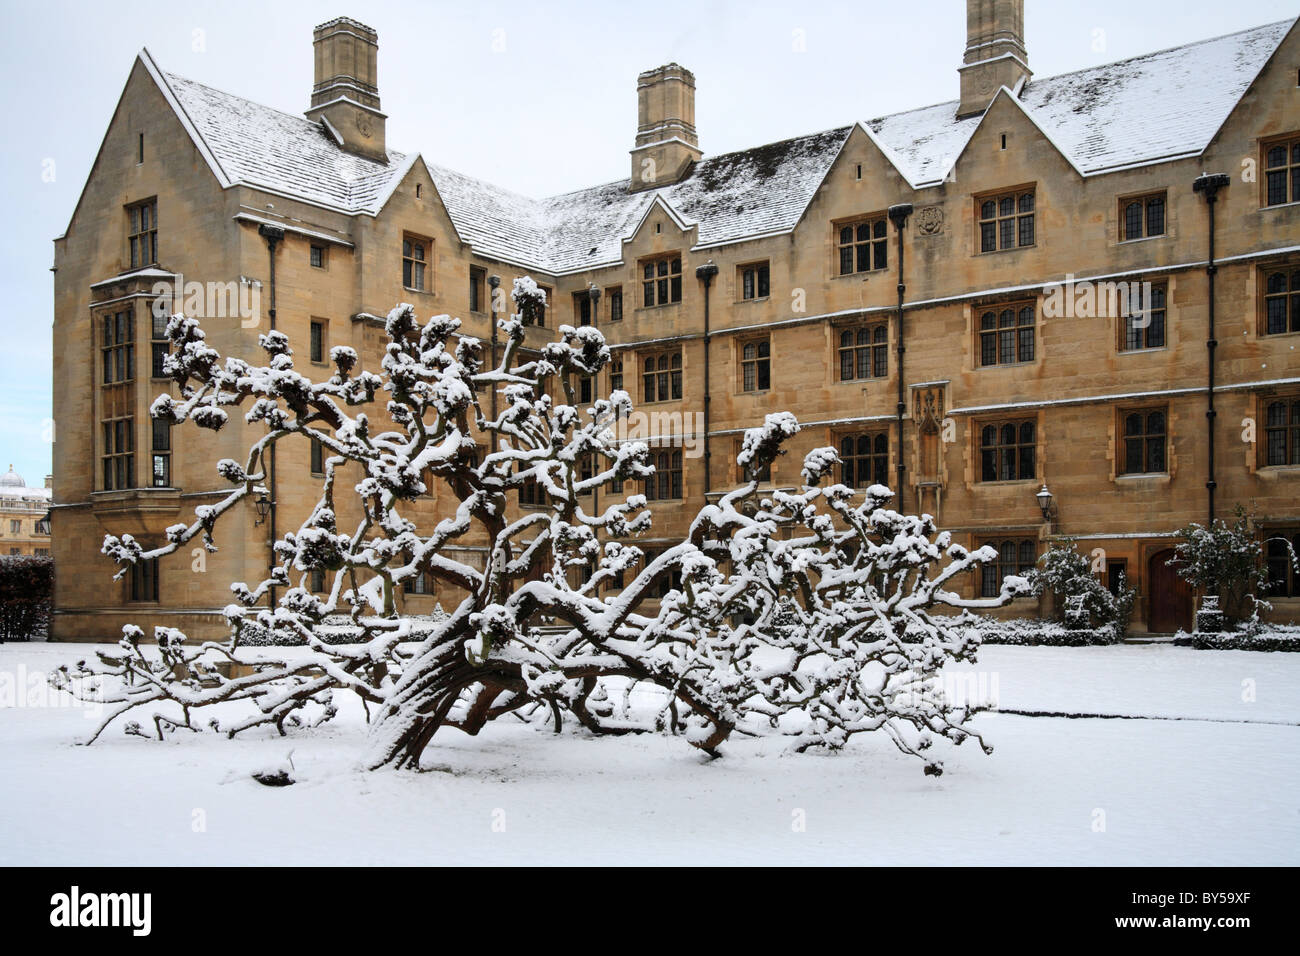 Kings College Cambridge in the snow 'Bodley's Court' Cambridge University - Stock Image